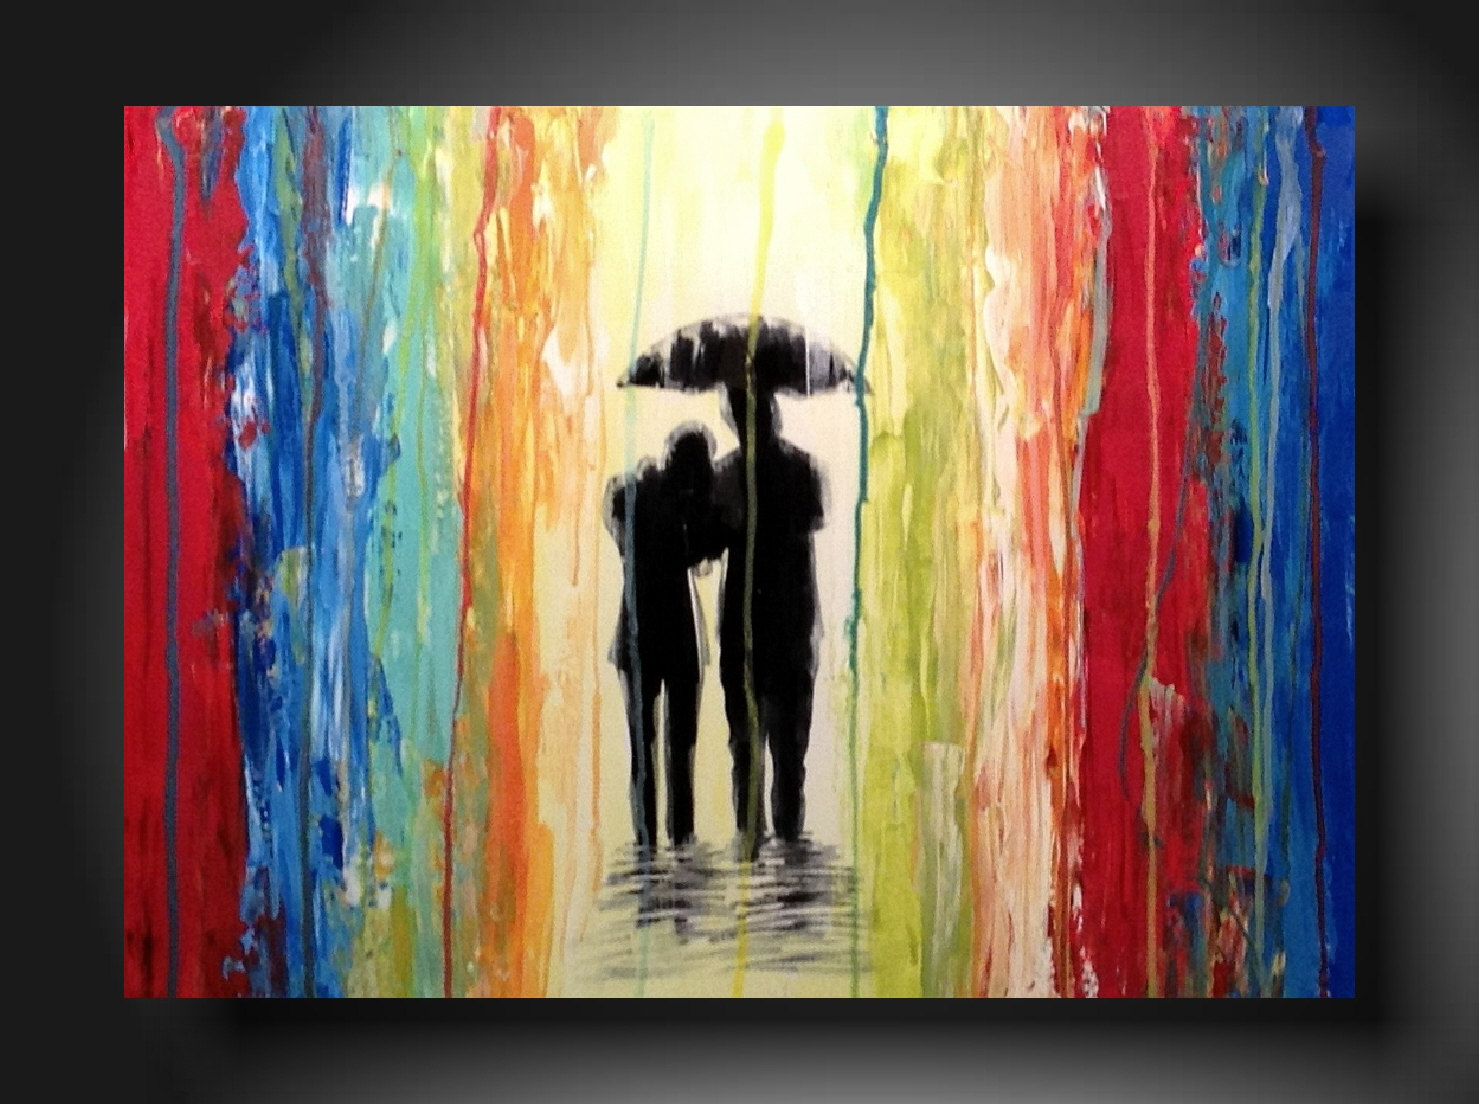 Abstract Painting 9 Background WallpaperHivewallpaper com 326